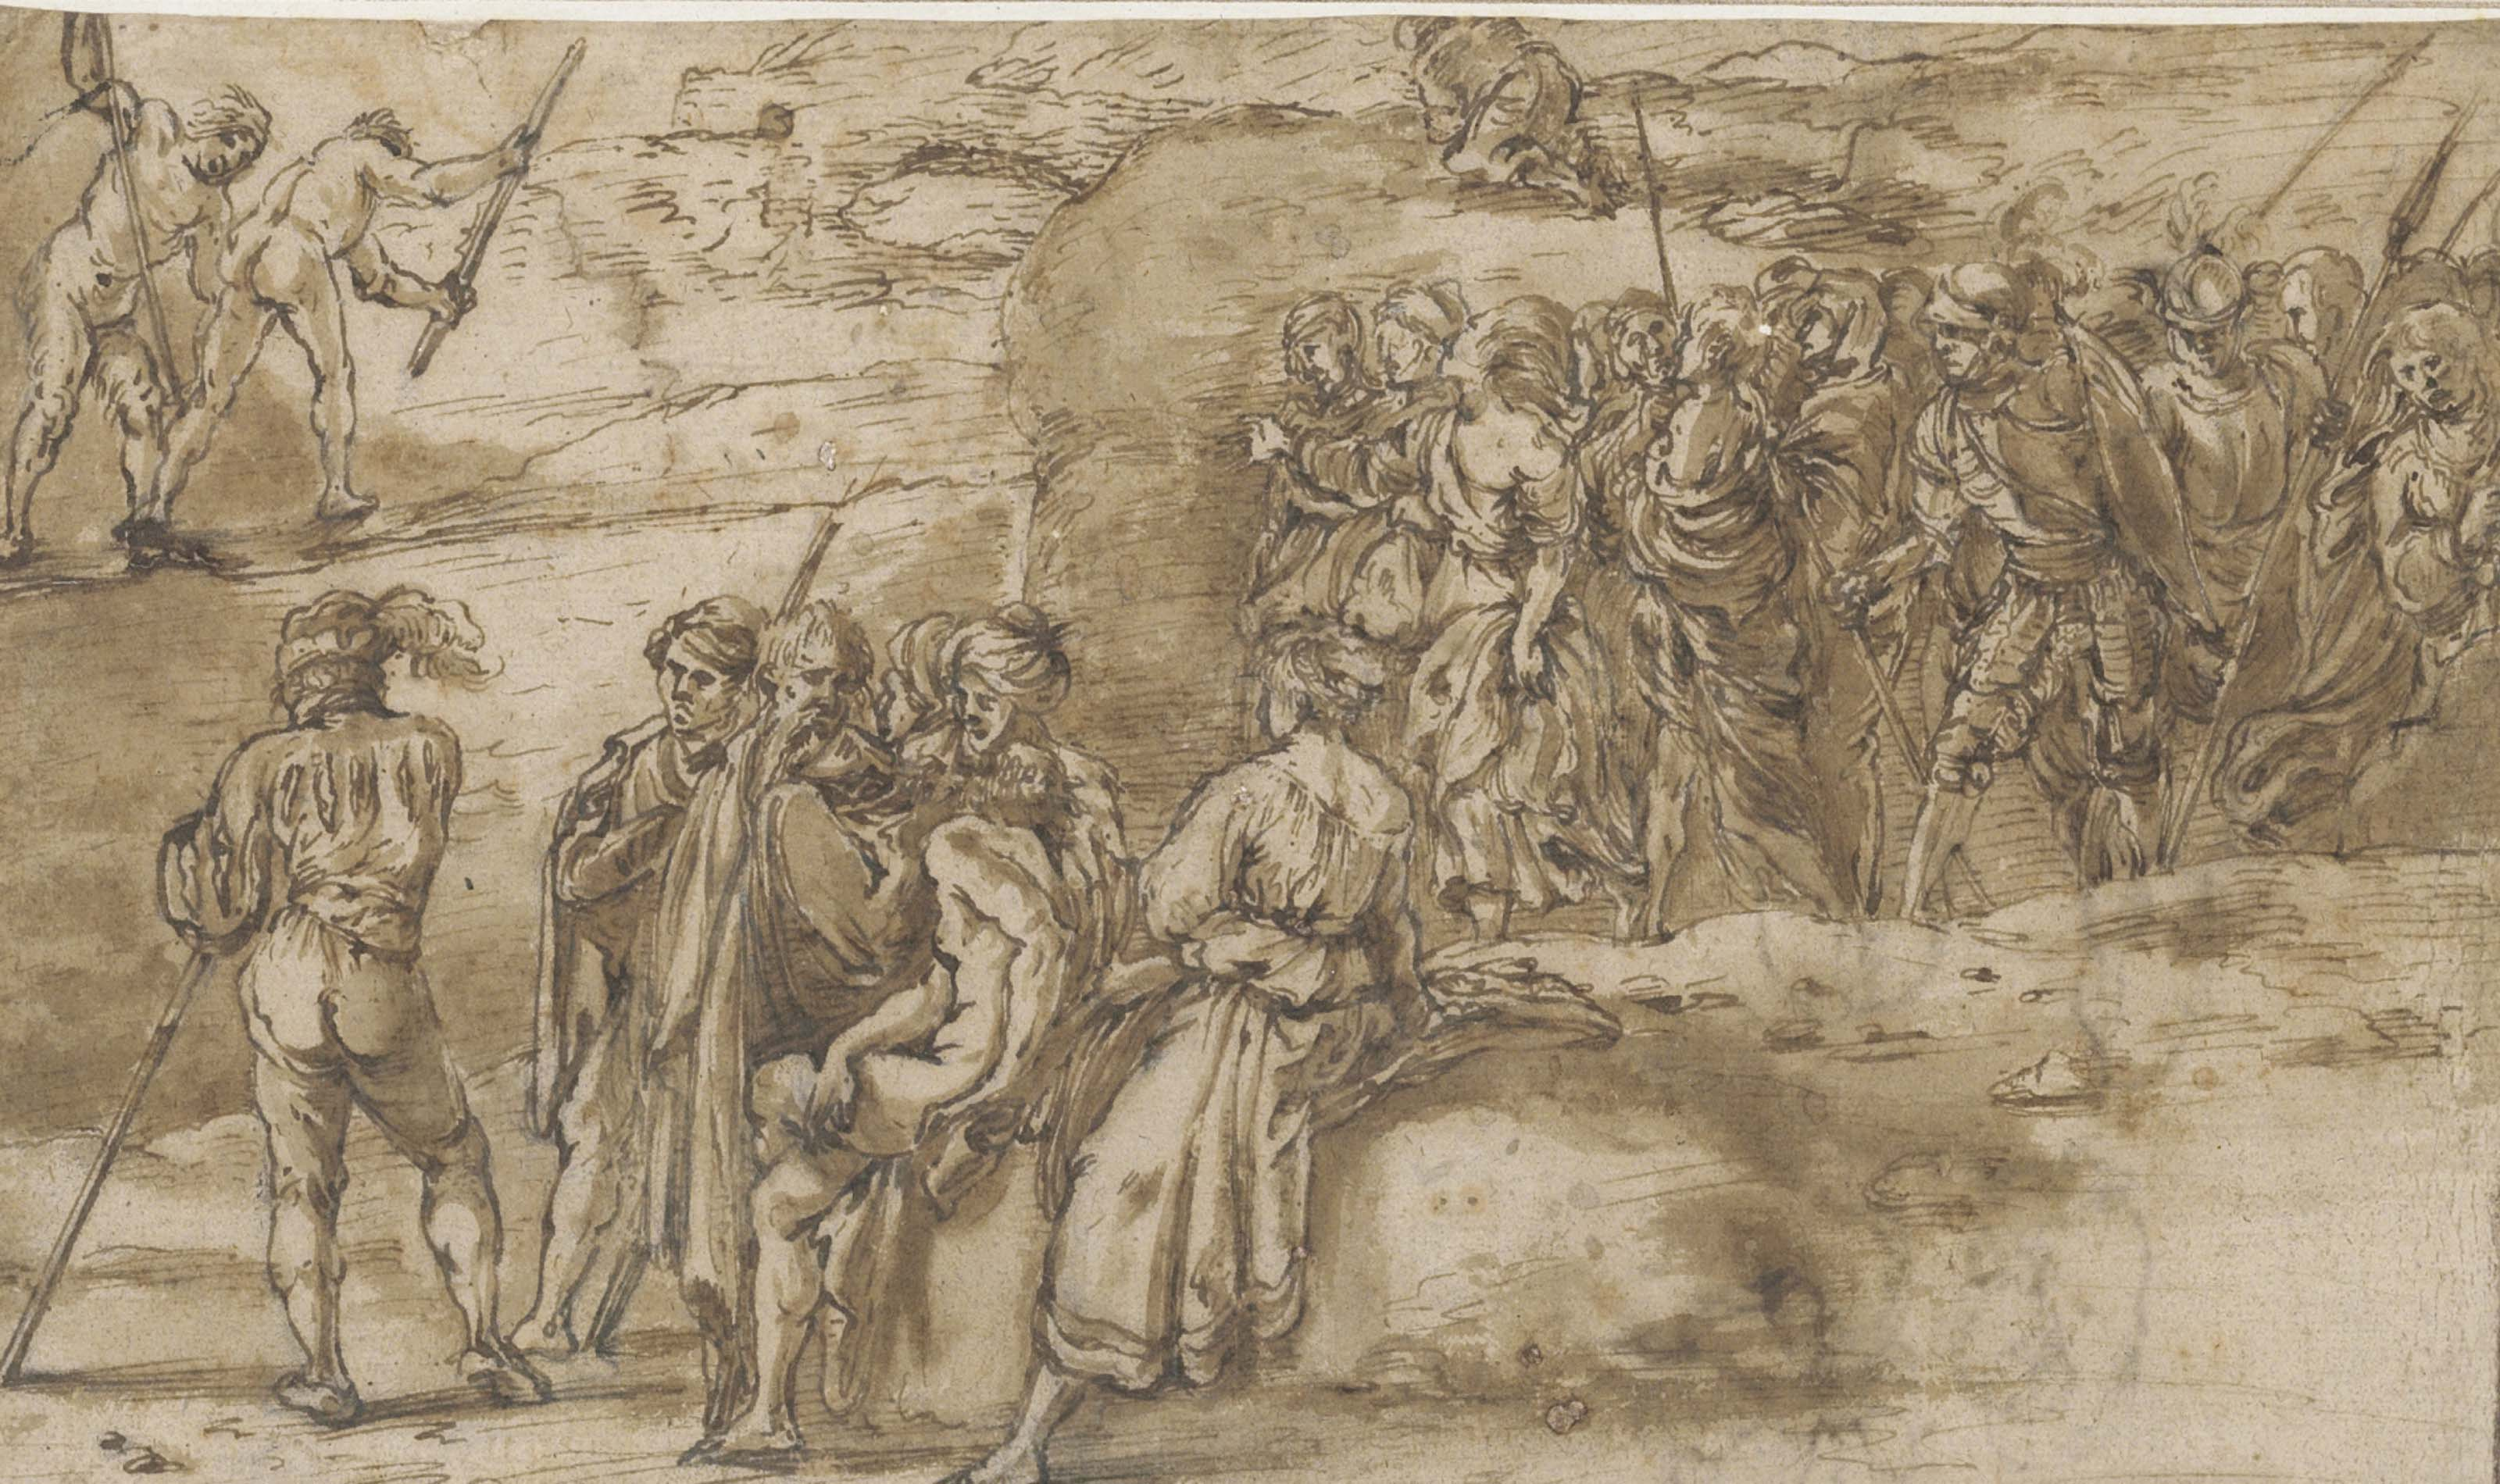 Seated and walking soldiers and other men and women in a rocky landscape (recto); Studies of shells (verso only visible through the recto)